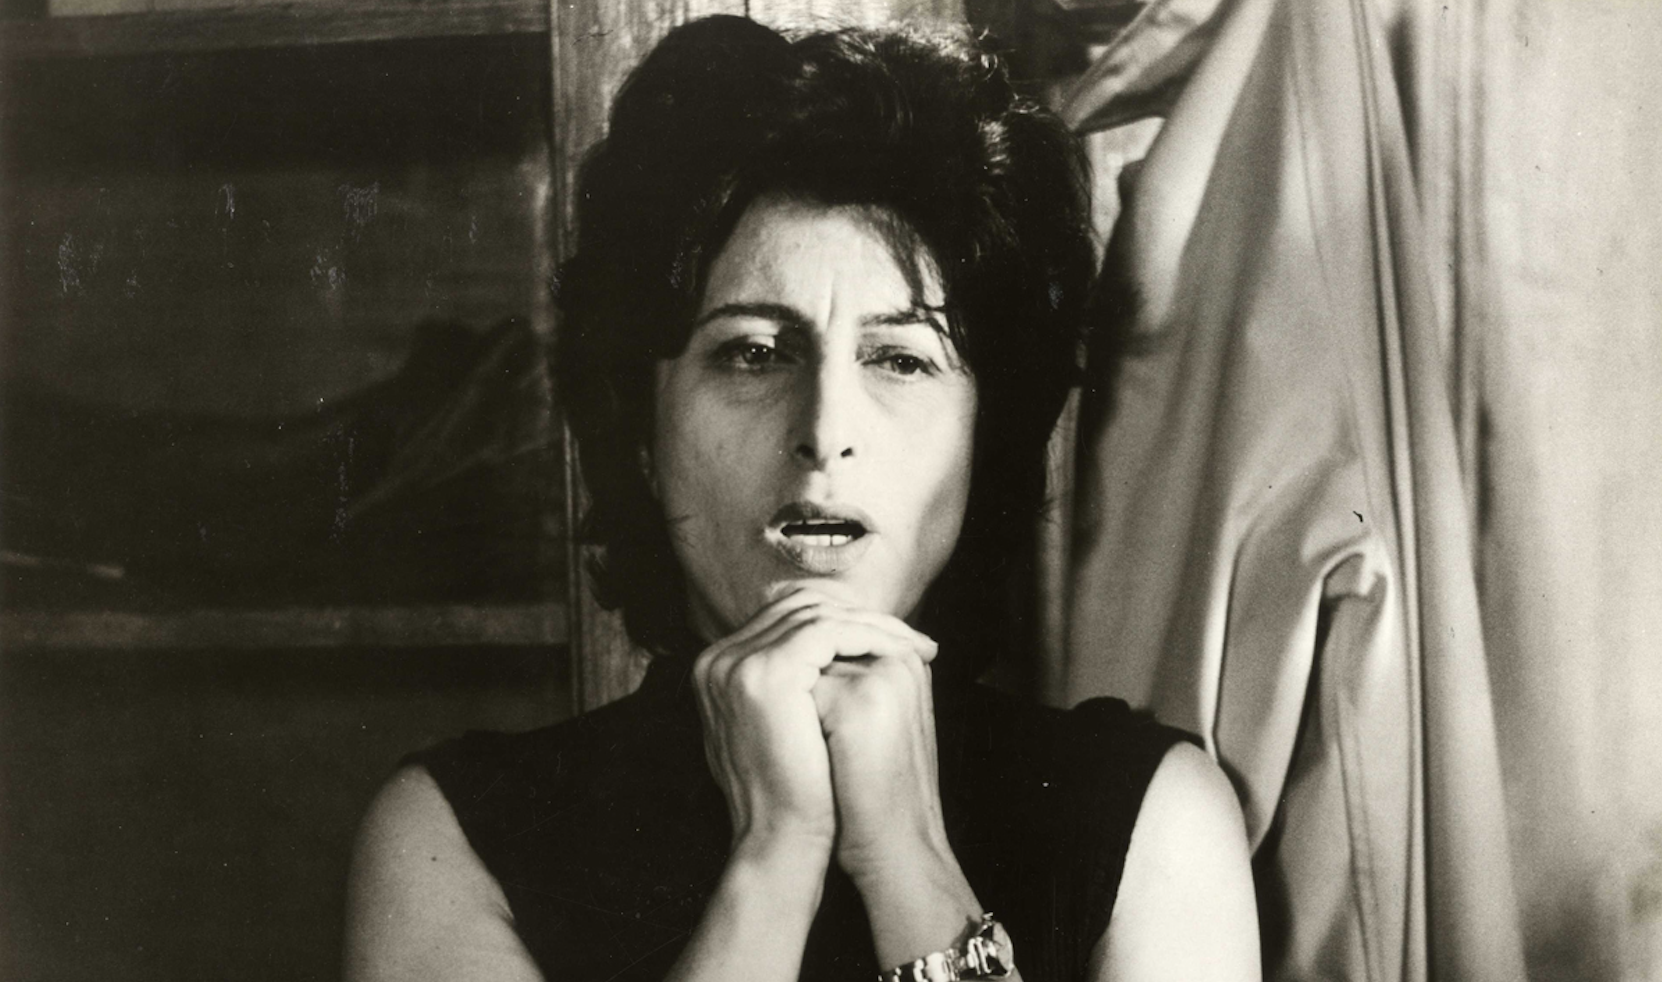 Italian actress Anna Magnani: biography, personal life, movies 49